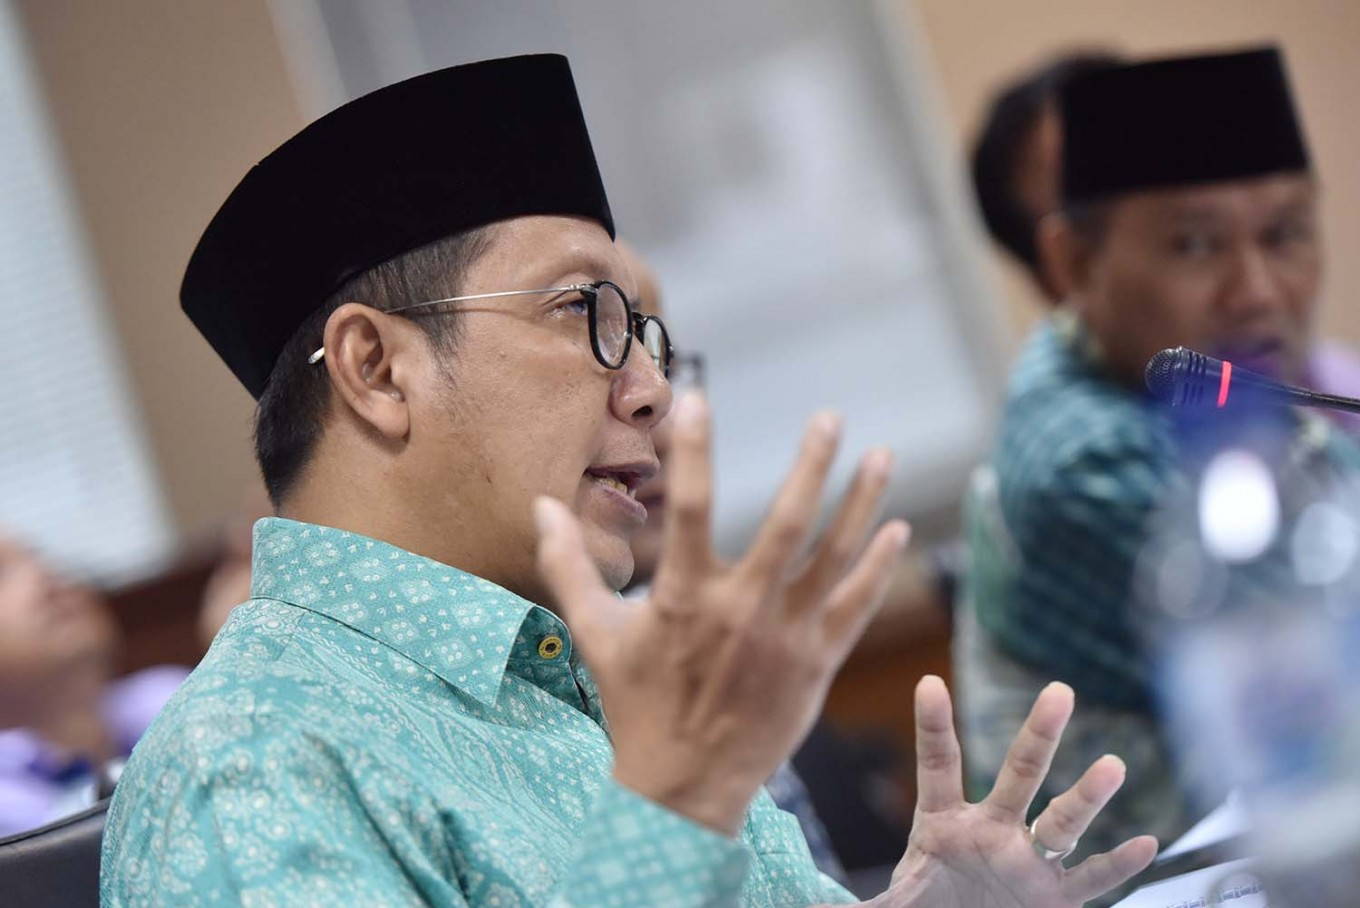 KPK seizes more than $40,000 from religious affairs minister's office